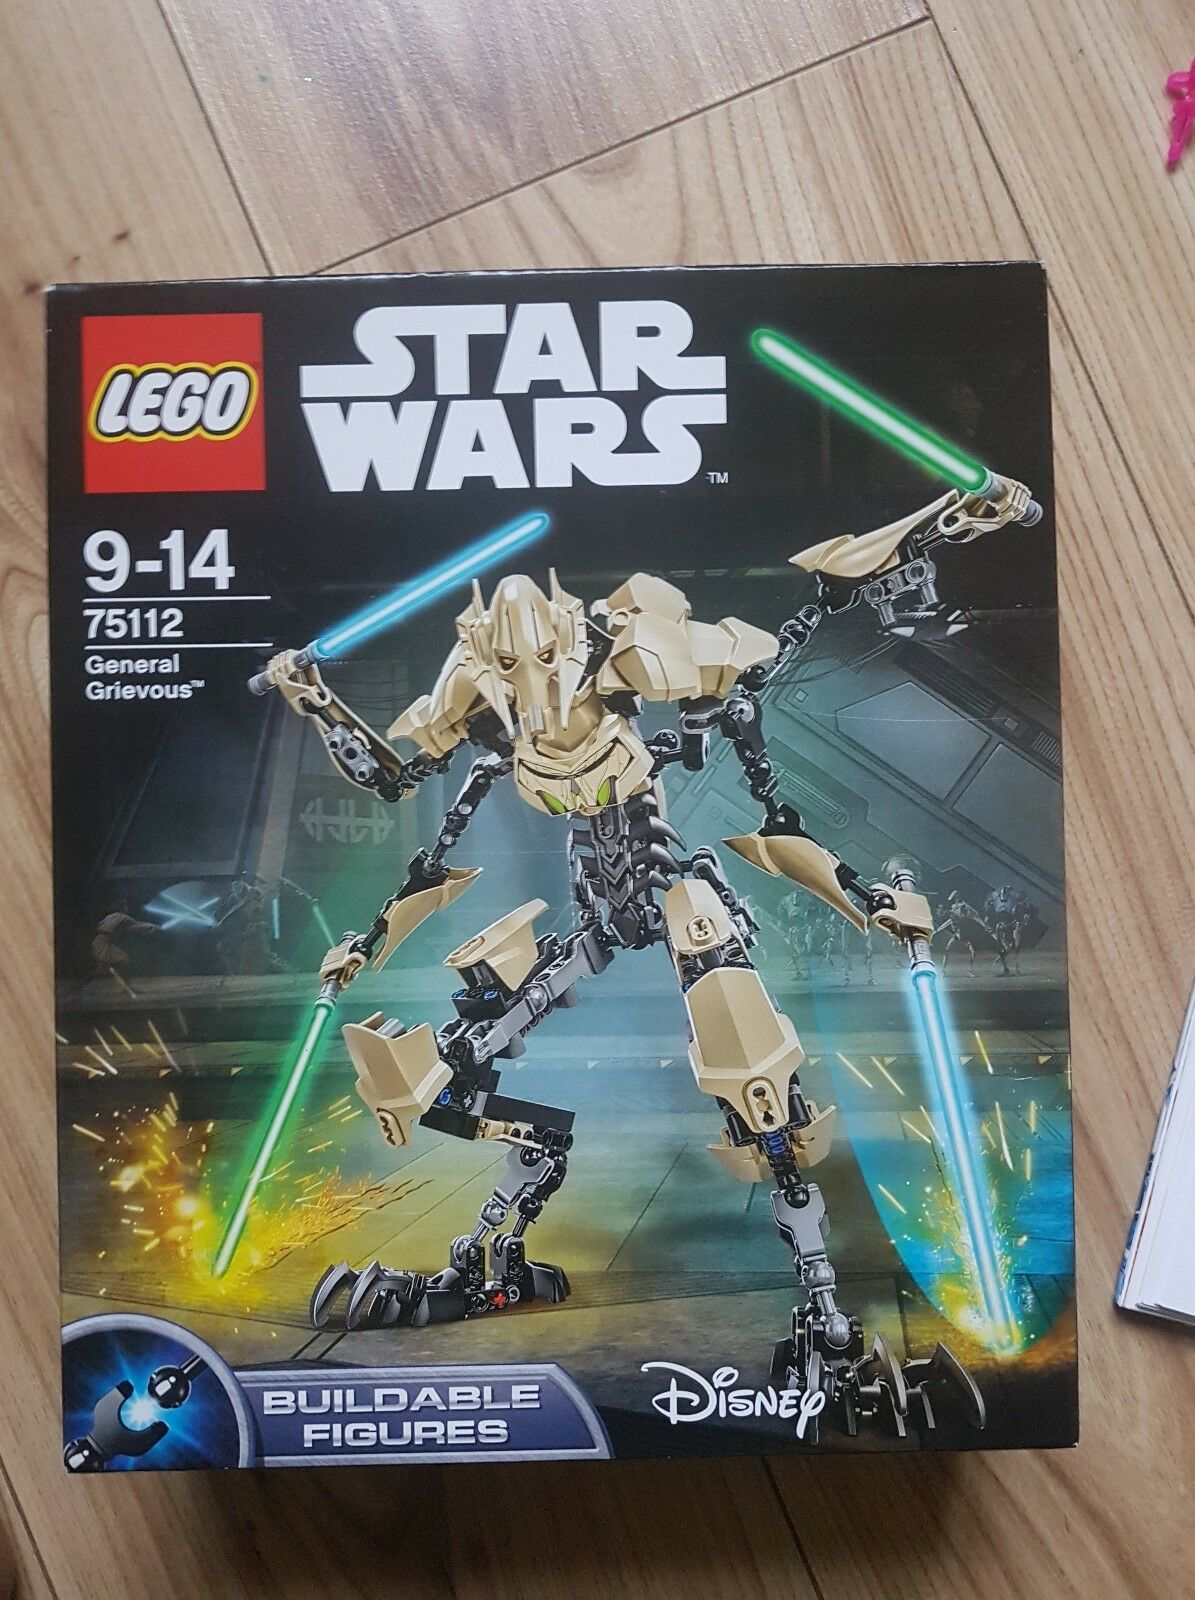 BNIB sealed Lego Star Wars Buildable 75112 General Grievous